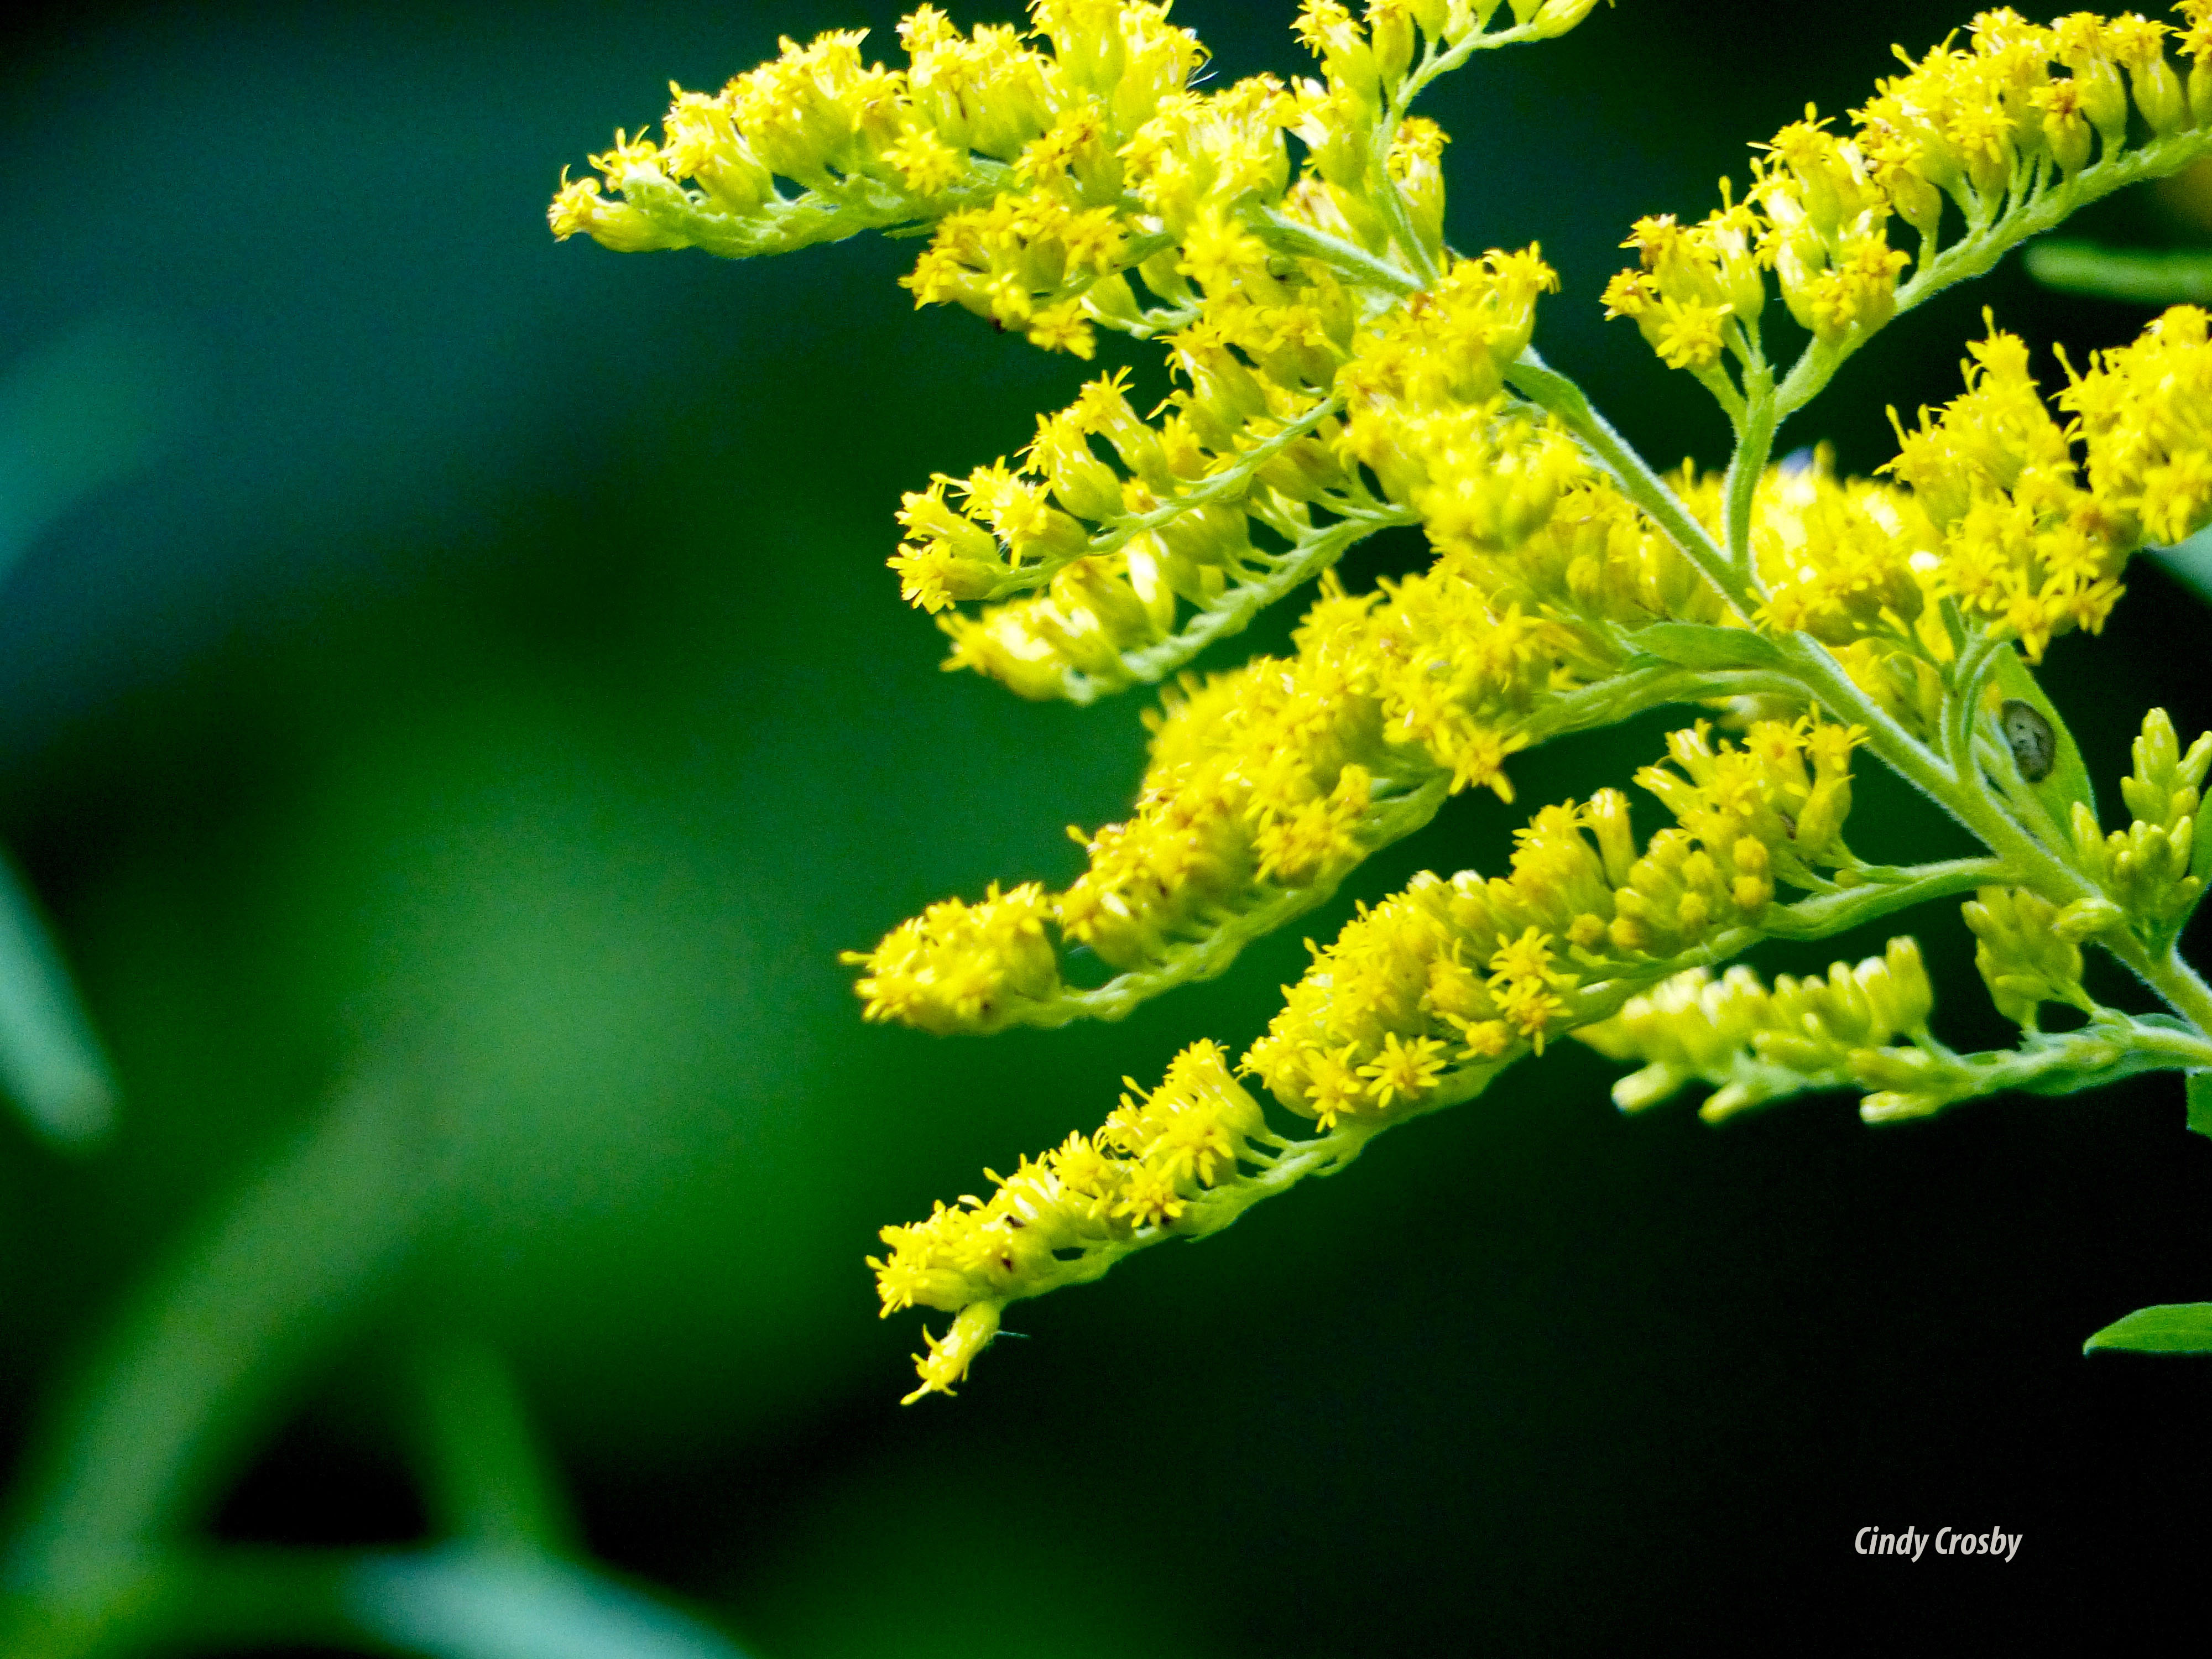 goldenrod818wm.jpg